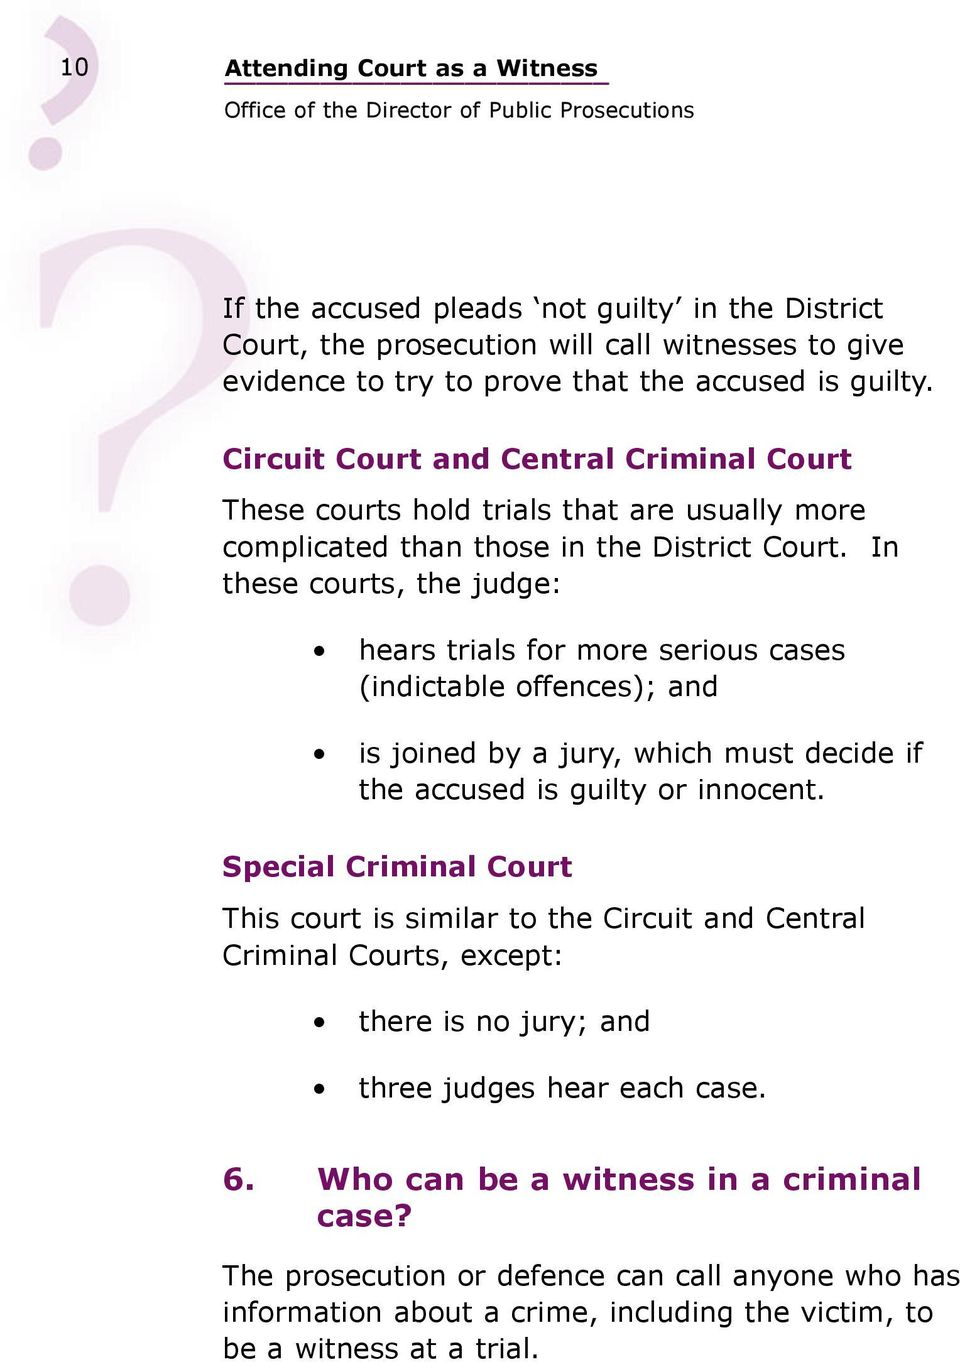 In these courts, the judge: hears trials for more serious cases (indictable offences); and is joined by a jury, which must decide if the accused is guilty or innocent.